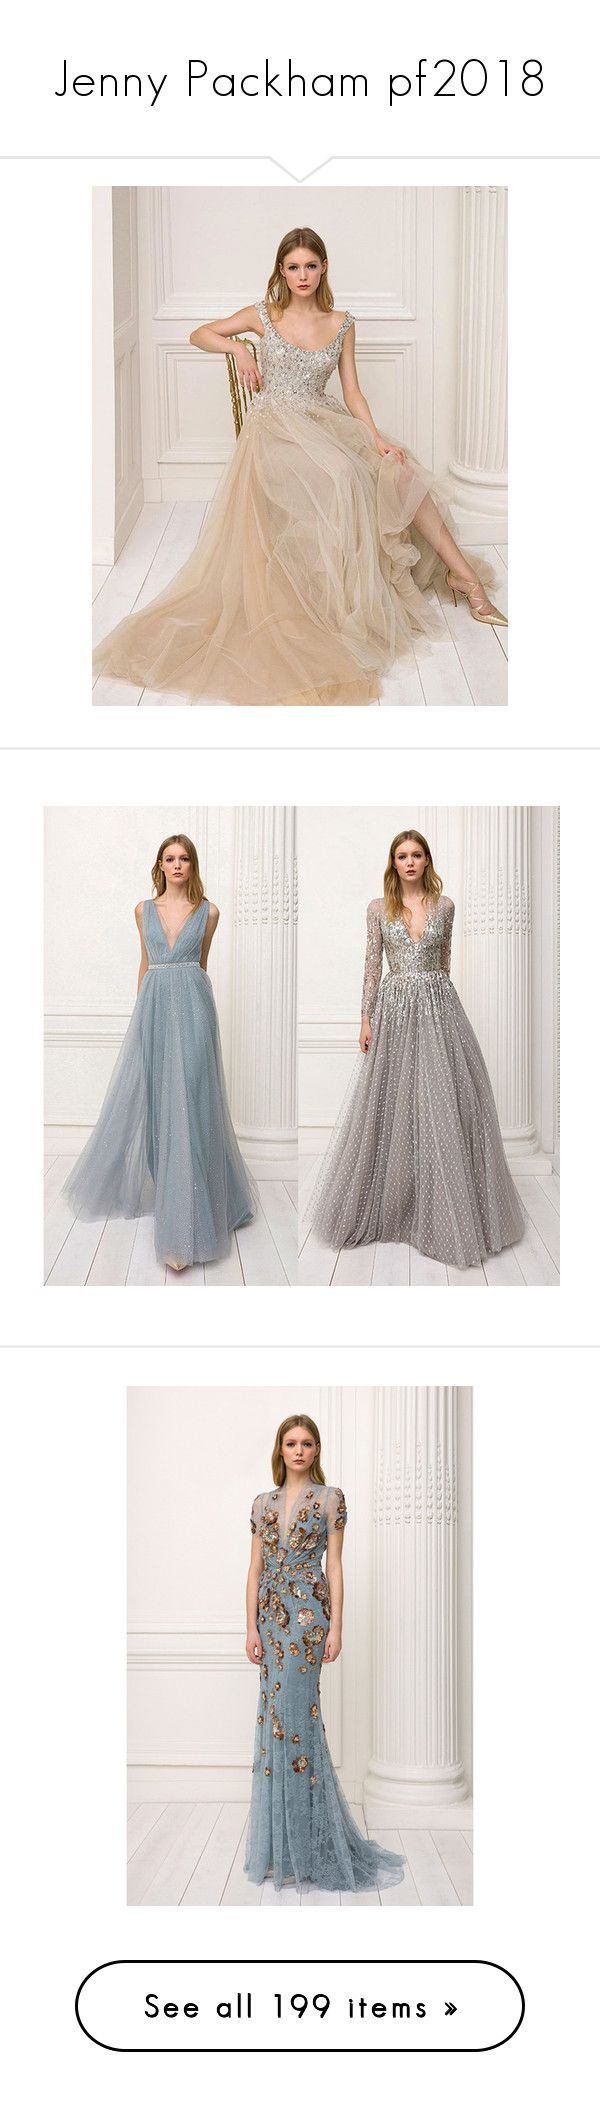 """""""Jenny Packham pf2018"""" by xandra-black ❤ liked on Polyvore featuring dresses, gowns, blue gown, blue sequin gown, blue evening dresses, lace evening gowns, sequin gown, white evening dresses, white lace gown and white v neck dress"""